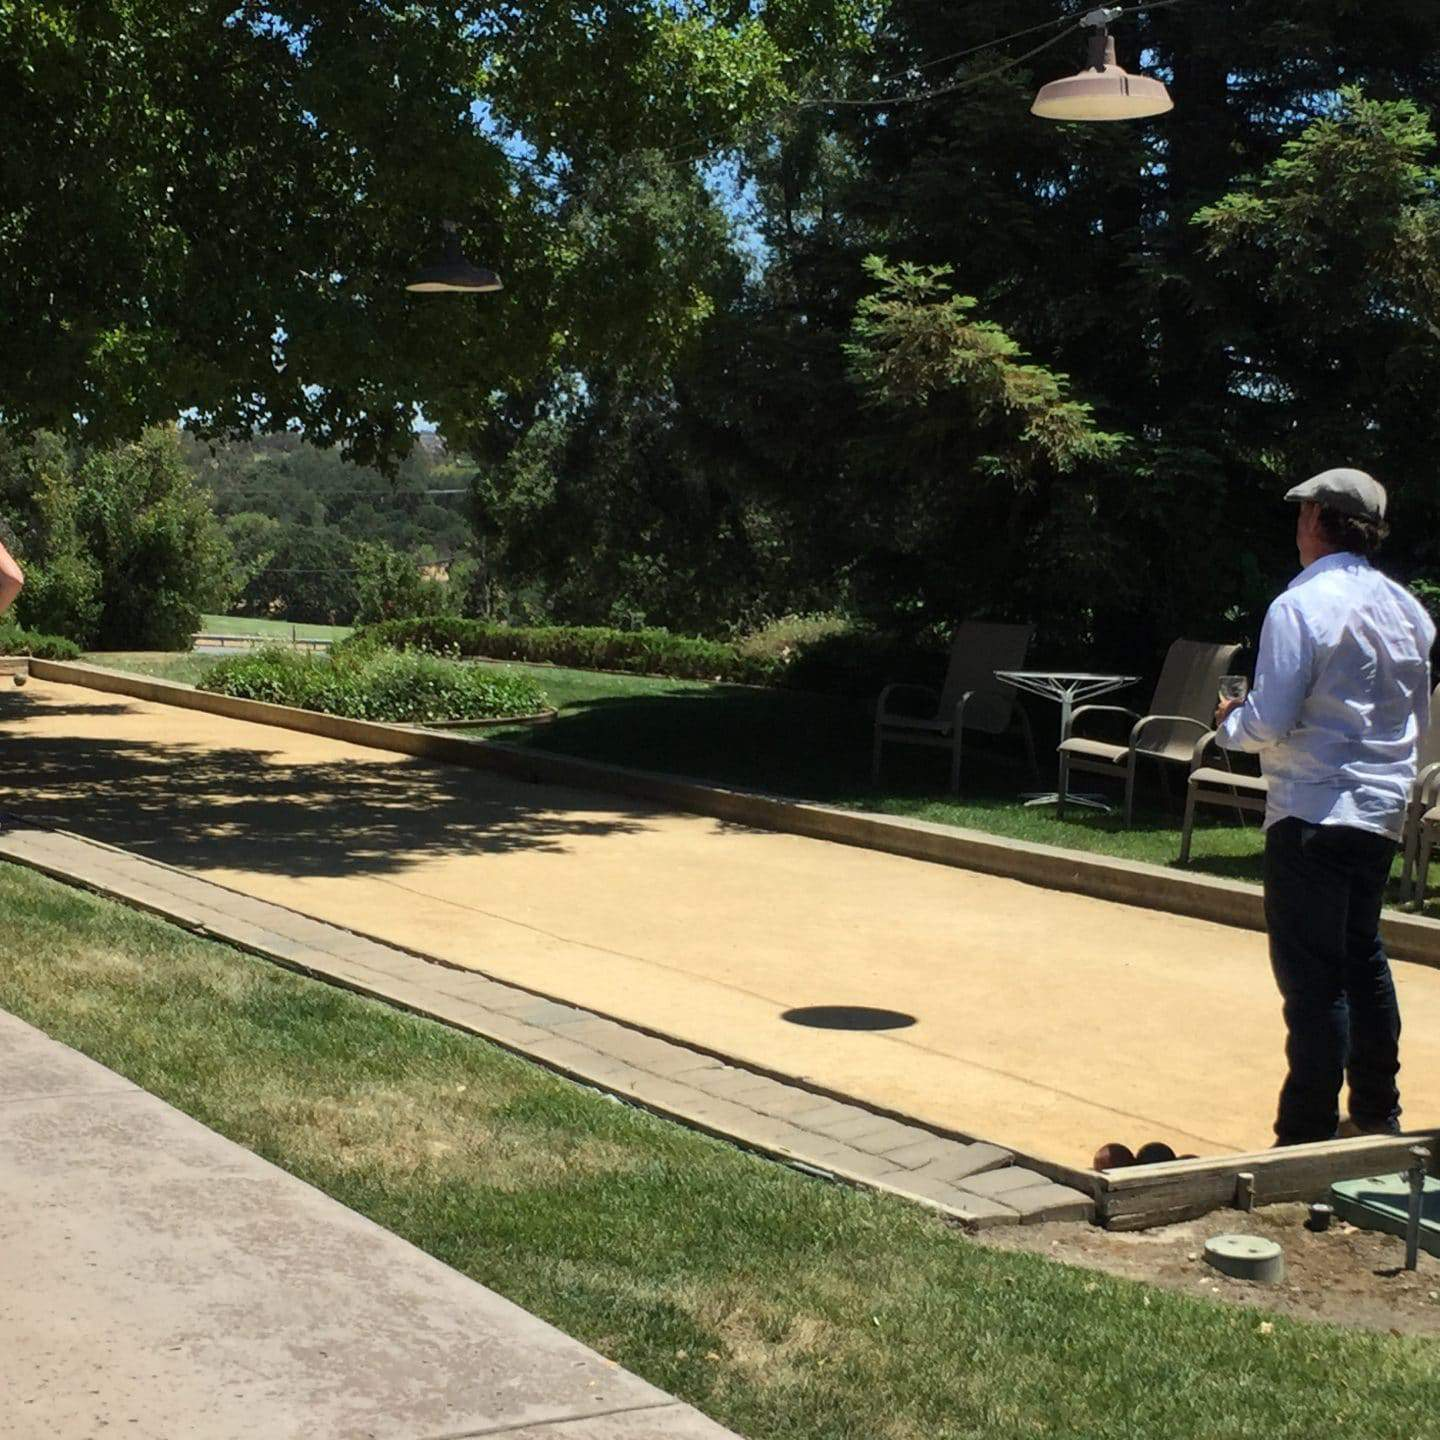 eberle winery bocce court